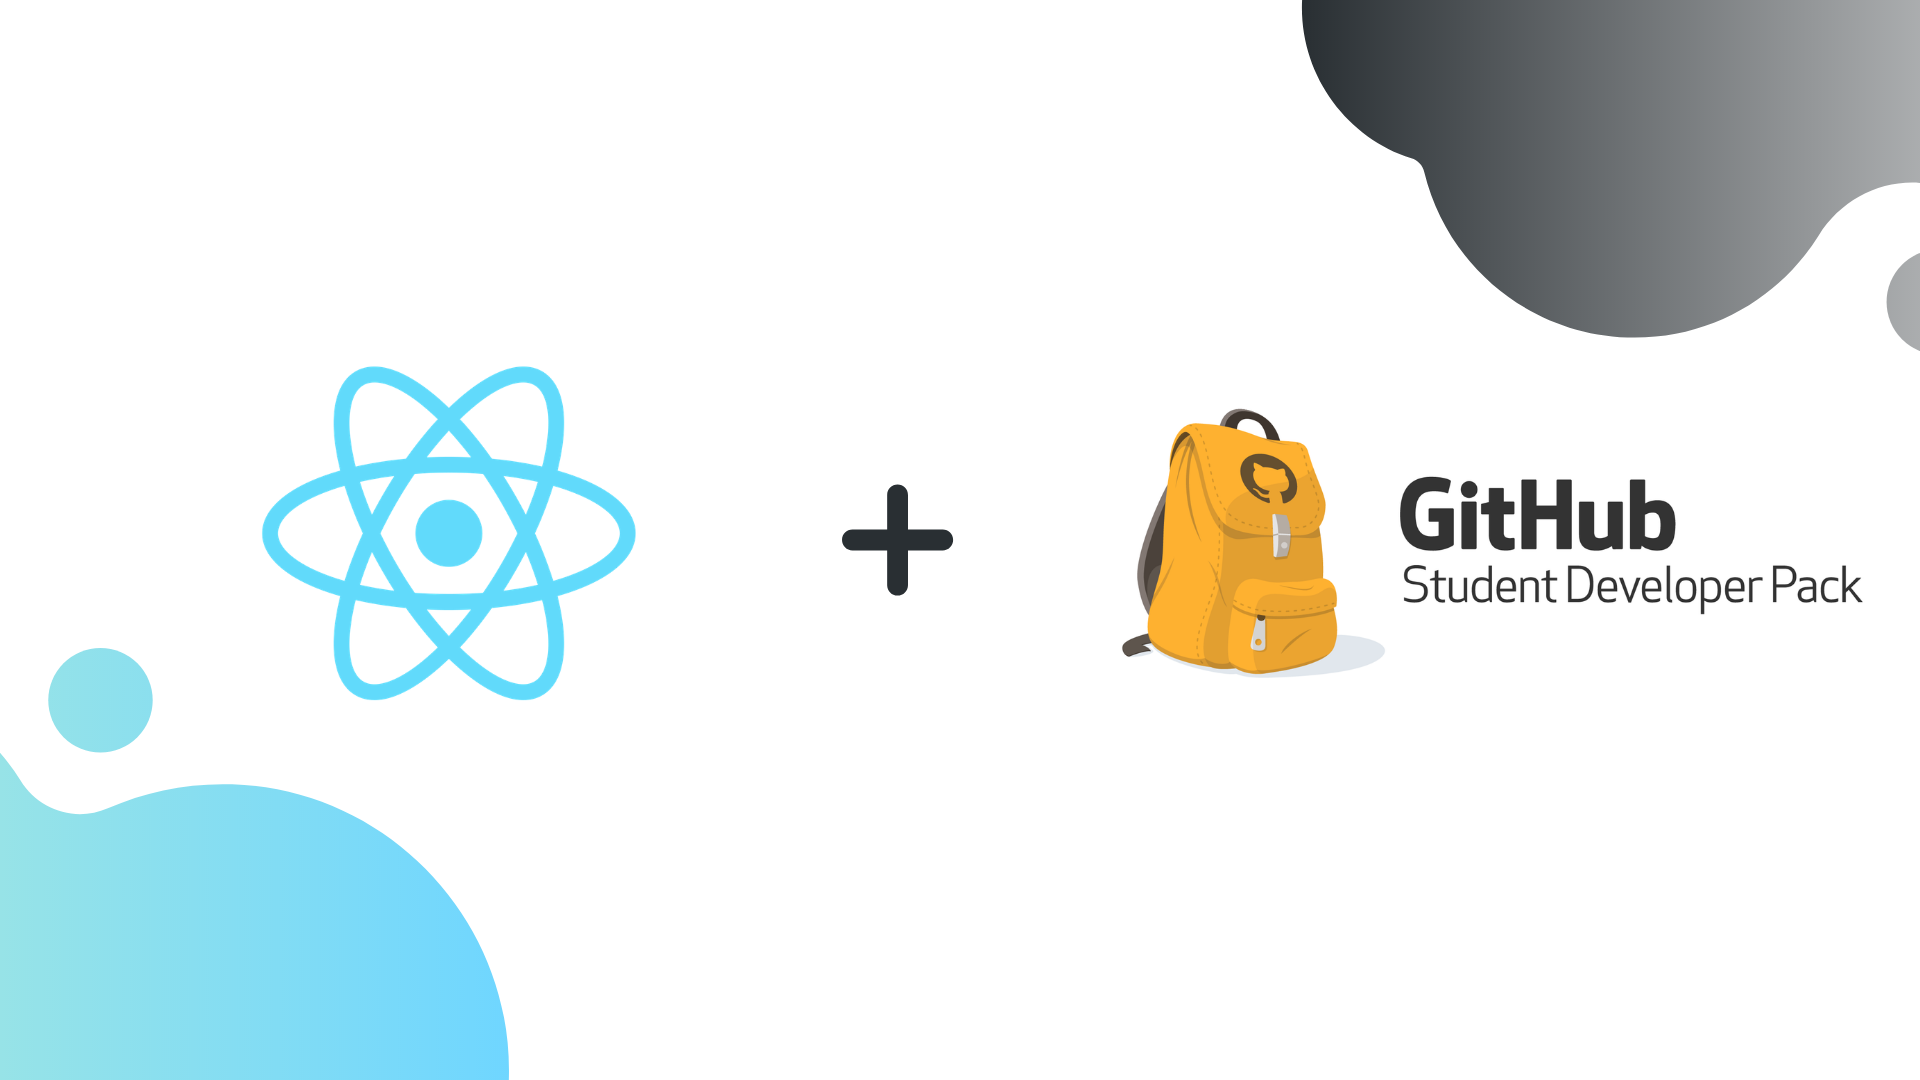 Create A Portfolio Using React And Github Student Developer Pack